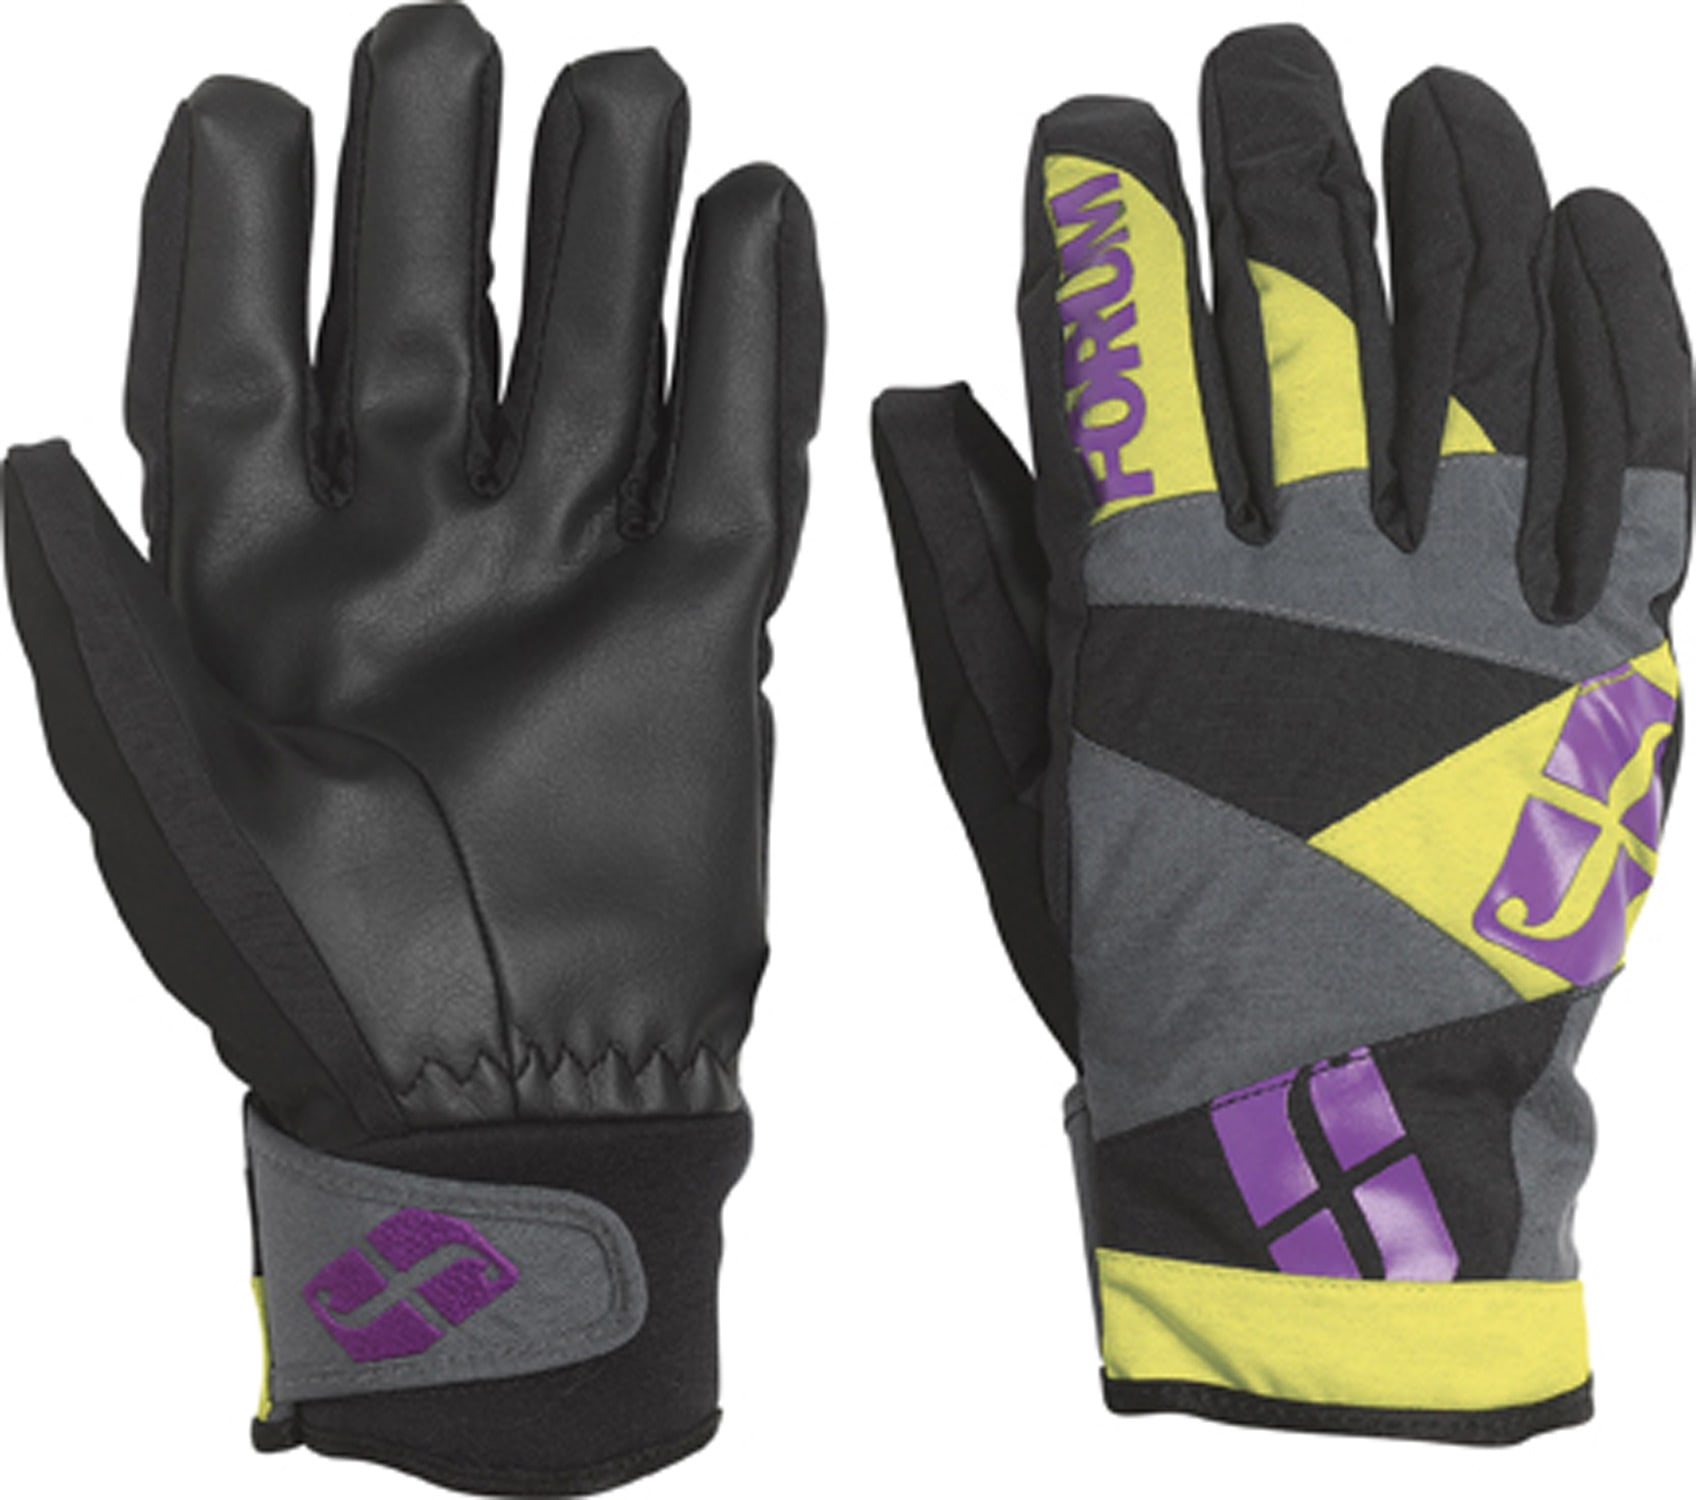 Forum Fair Gloves Oil Spill - Men's